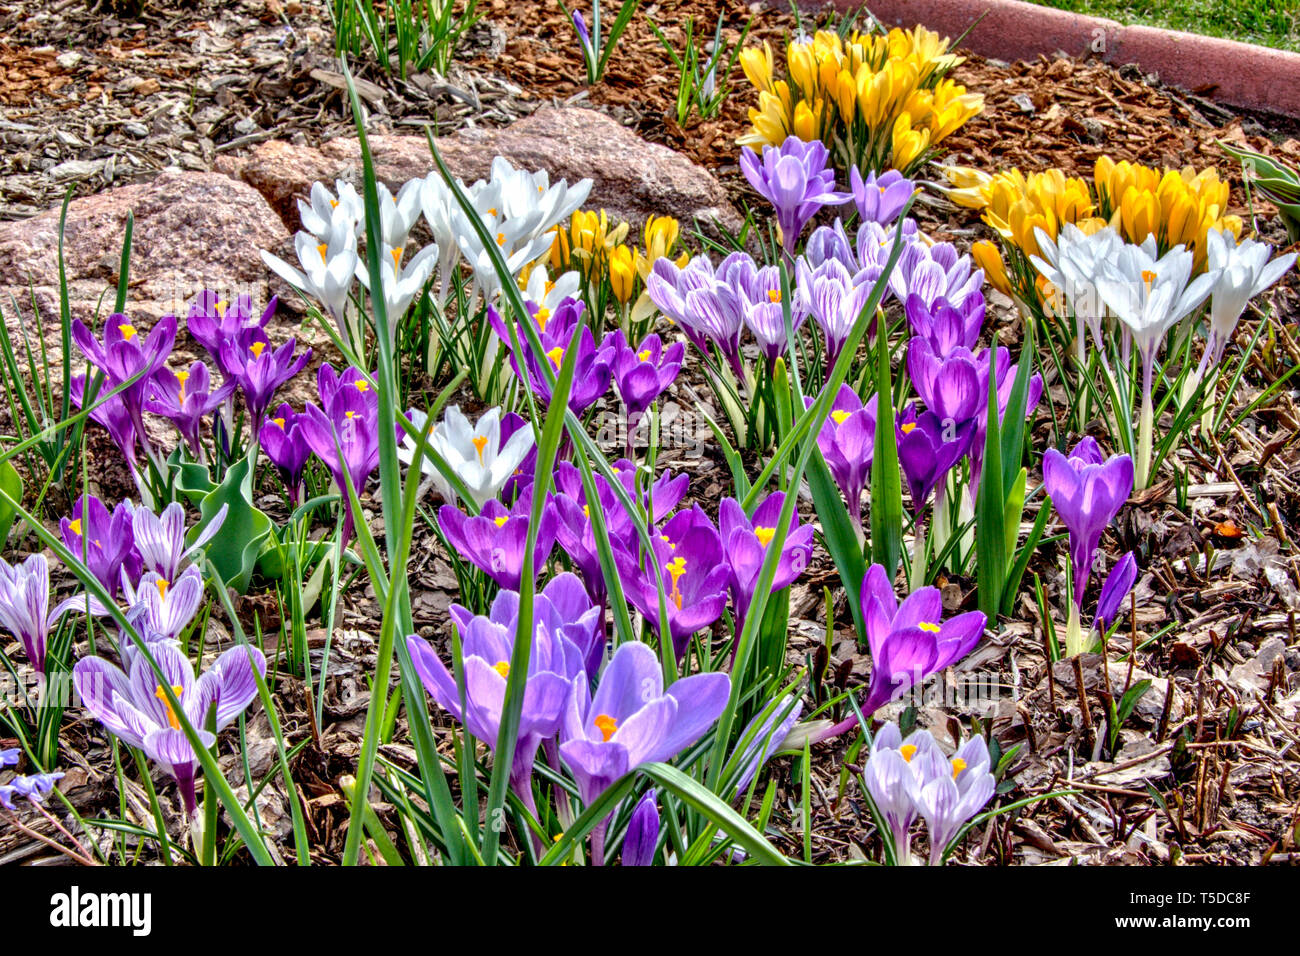 Large flowered crocus in bloom. Stock Photo